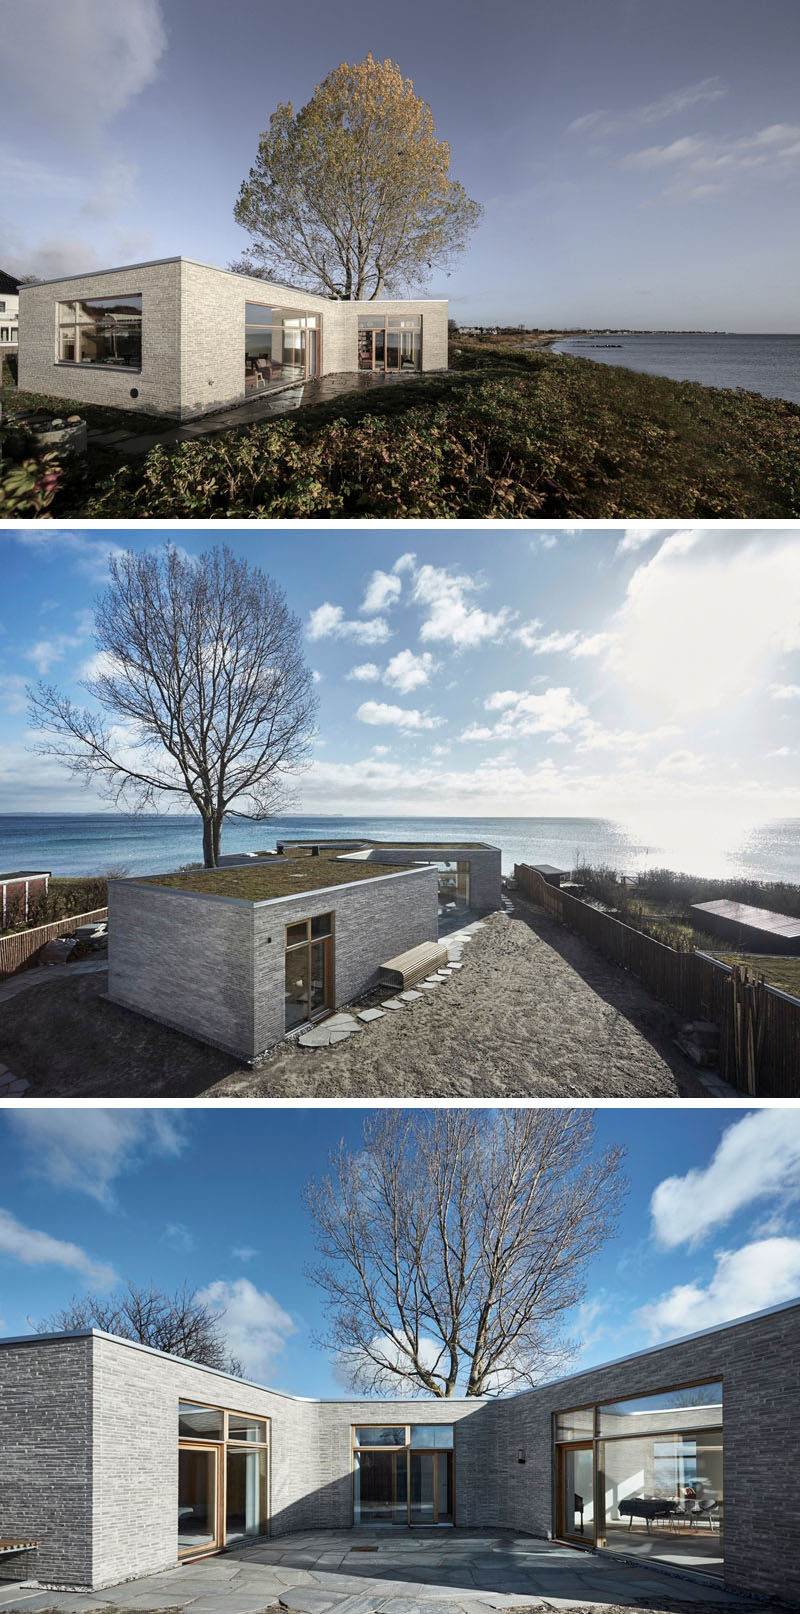 Stone Home Designs: 19 Examples Of Modern Scandinavian House Designs